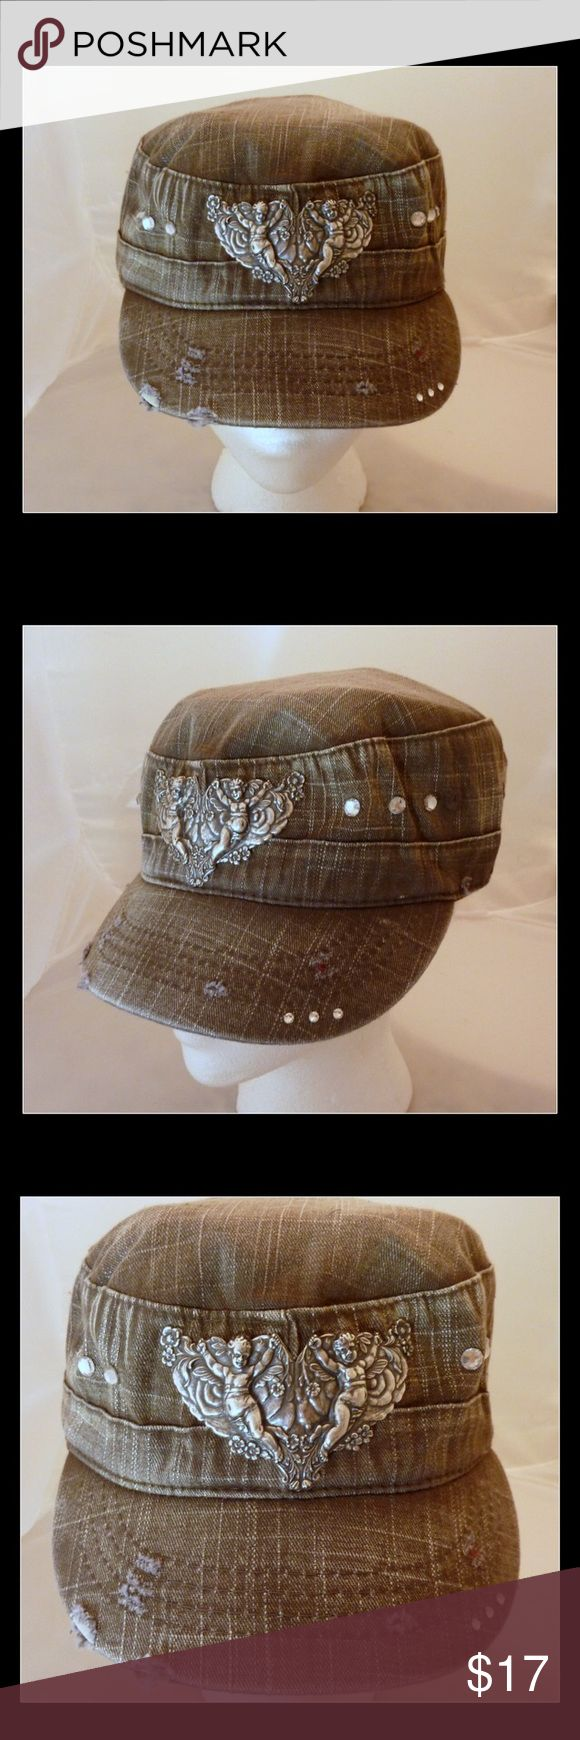 Distressed Grey Military Hat - New - OOAK A grey distressed military hat has been embellished with a double angel metal stamping, rhinestones on both sides and a trio of rhinestones on the brim to top it off.  This hat is adjustable and will fit all sizes. Brand New. Accessories Hats